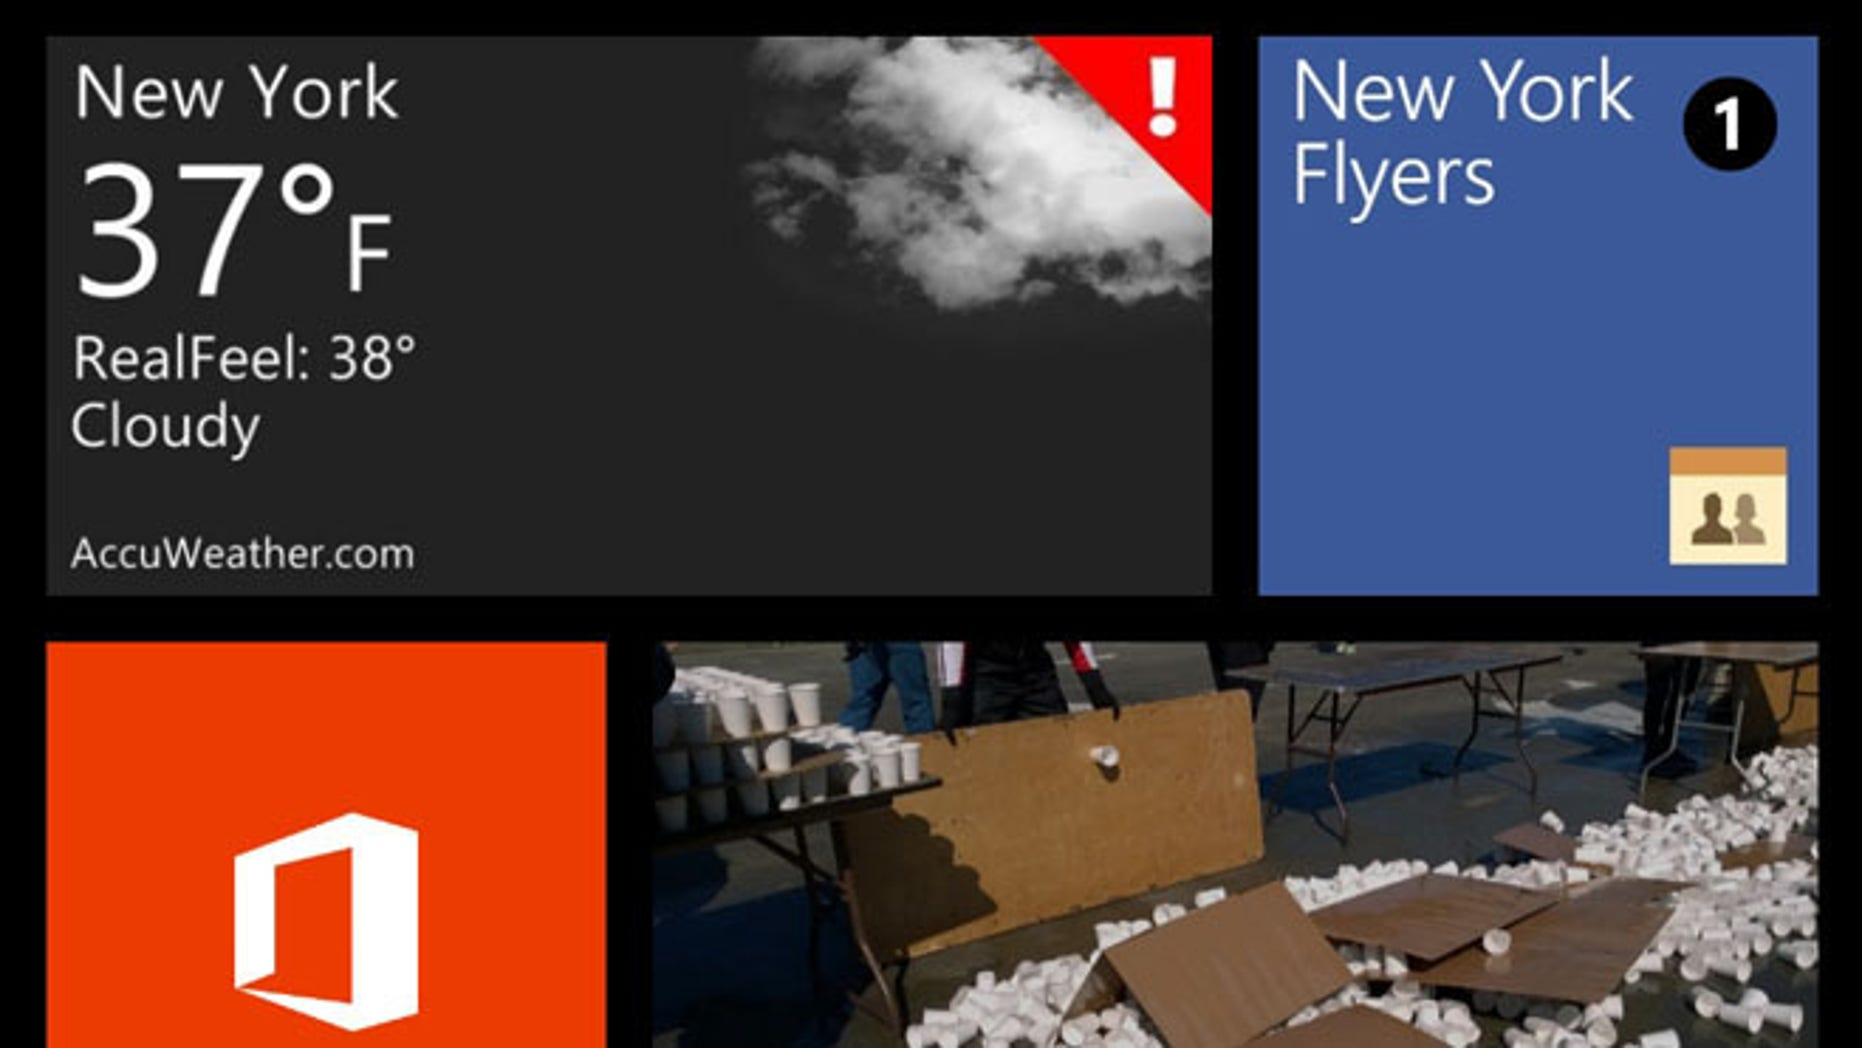 A section of the Microsoft Windows Phone 8 interface. Windows Phone 8 is not the same as Windows 8, the operating system for tablets, laptops and desktops, however.